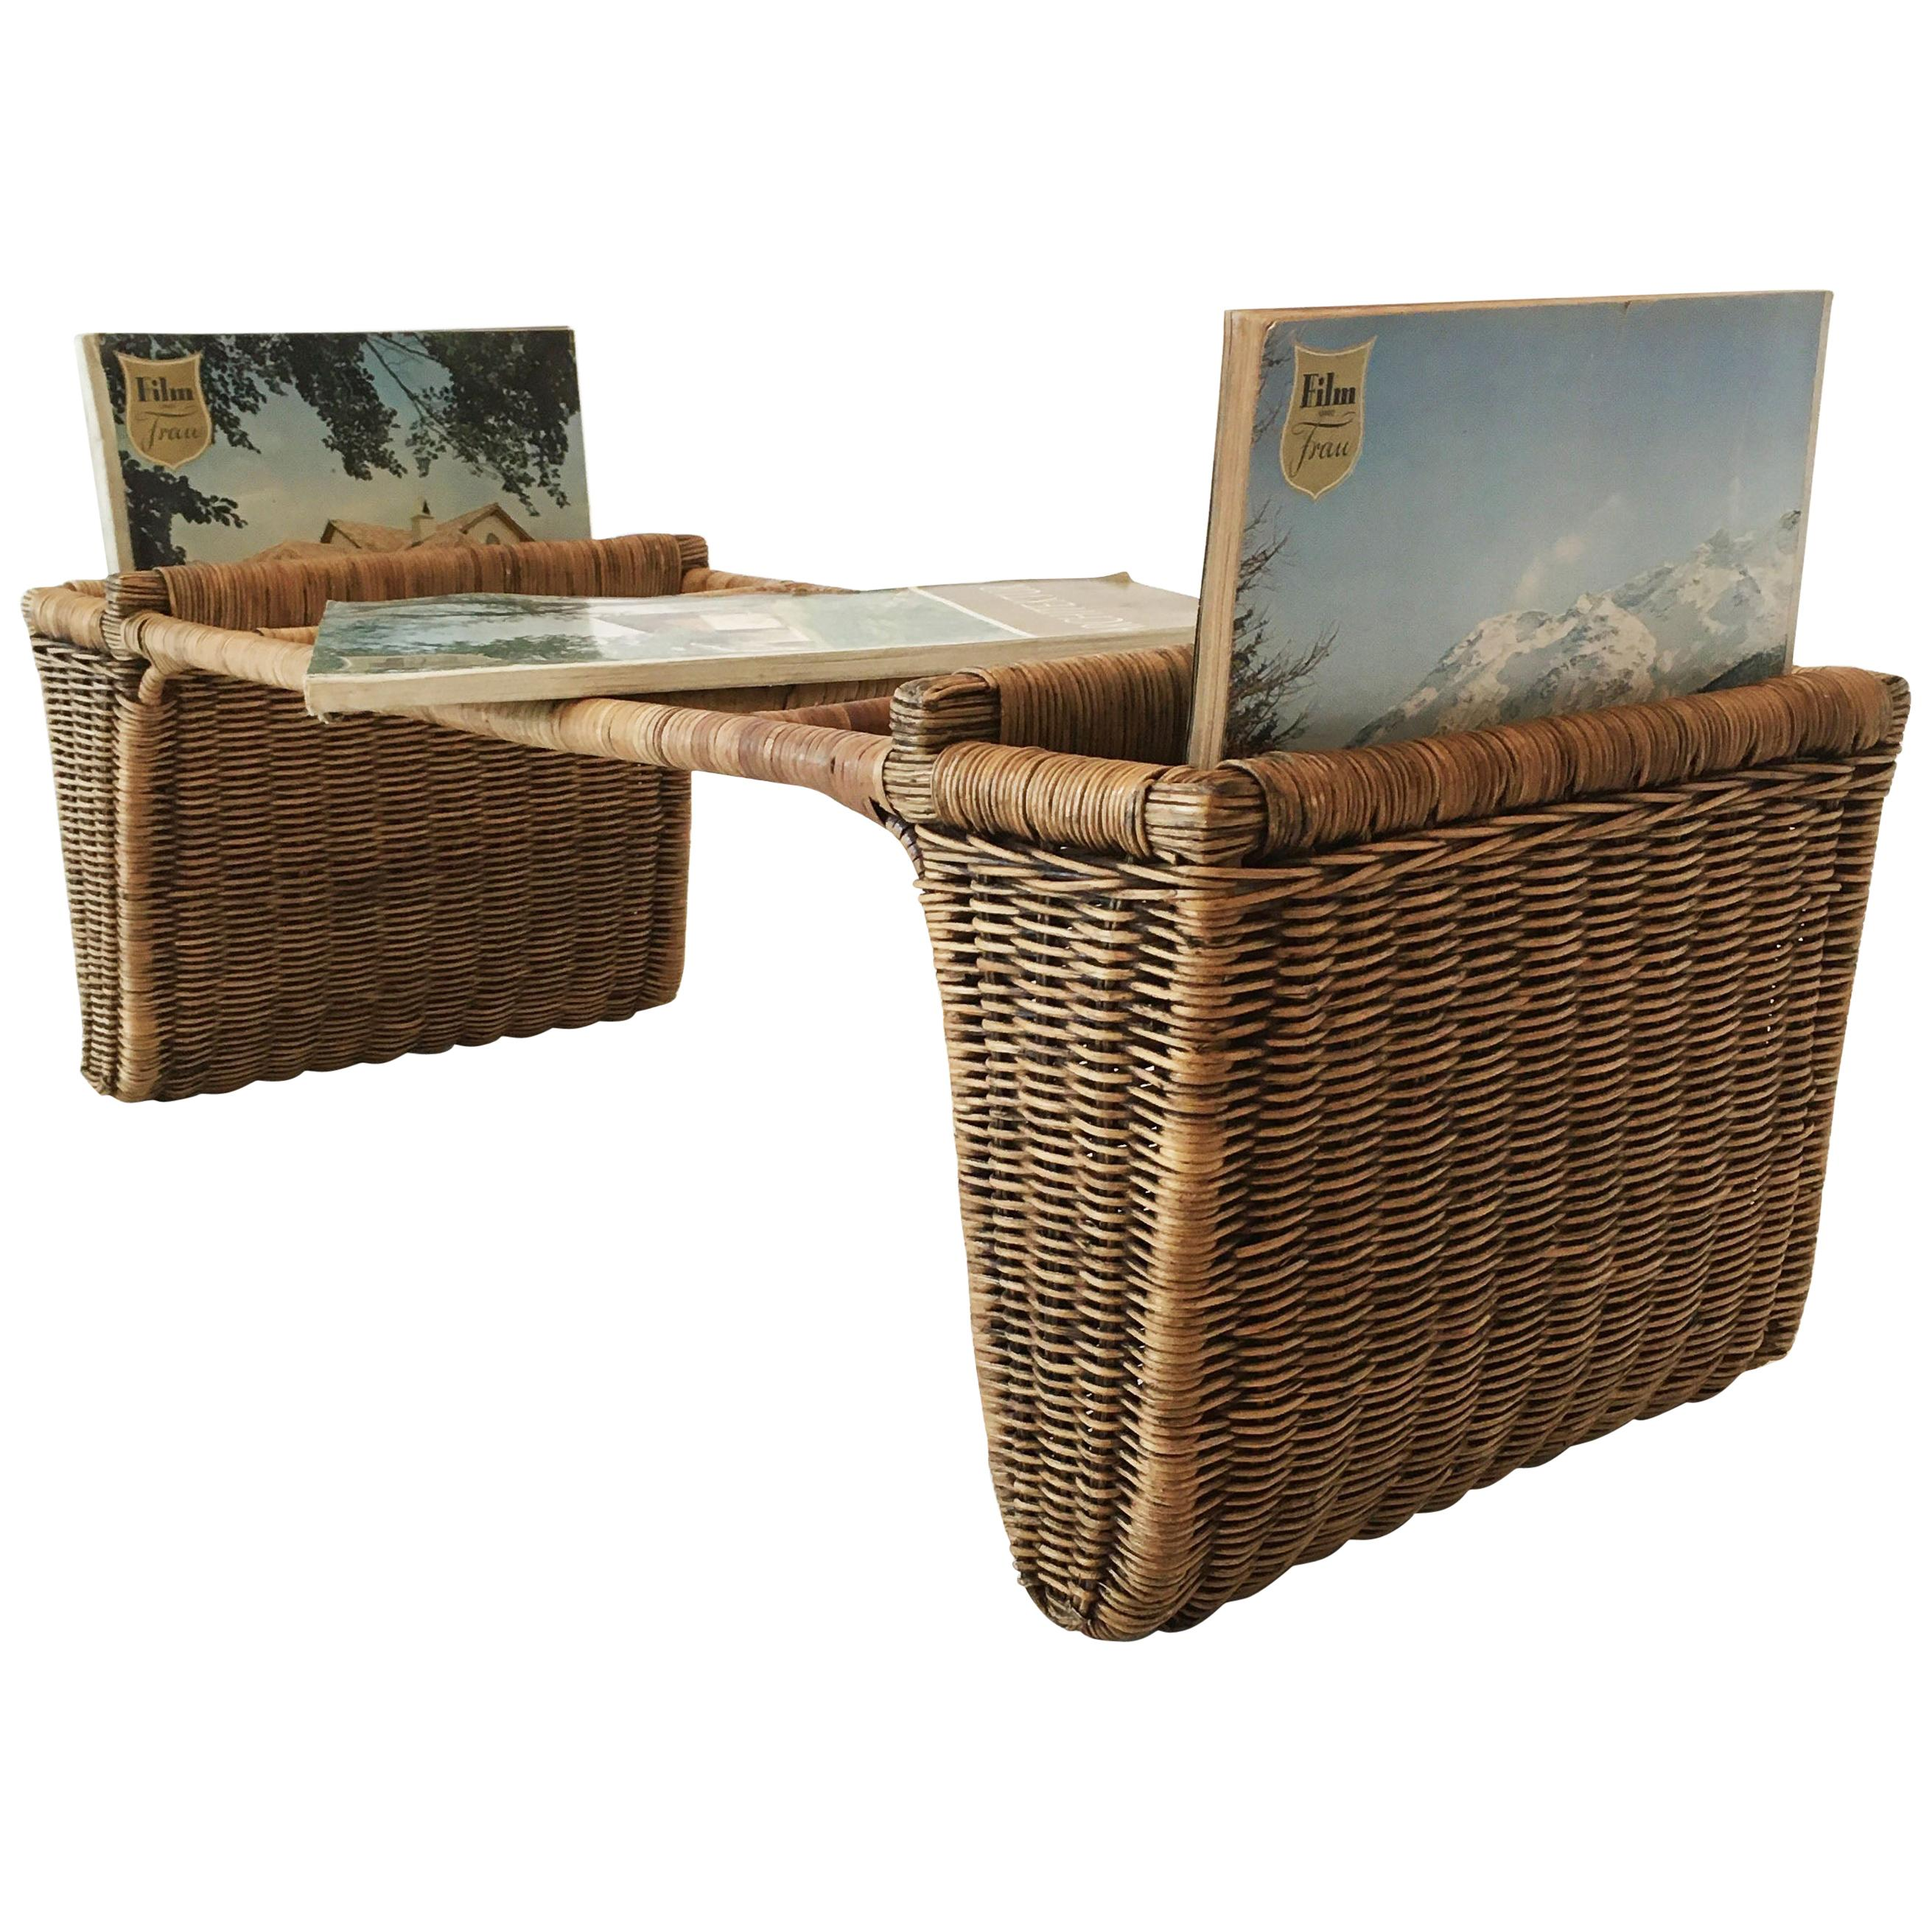 Woven Wicker Table Magazine Rack, Austria, circa 1950